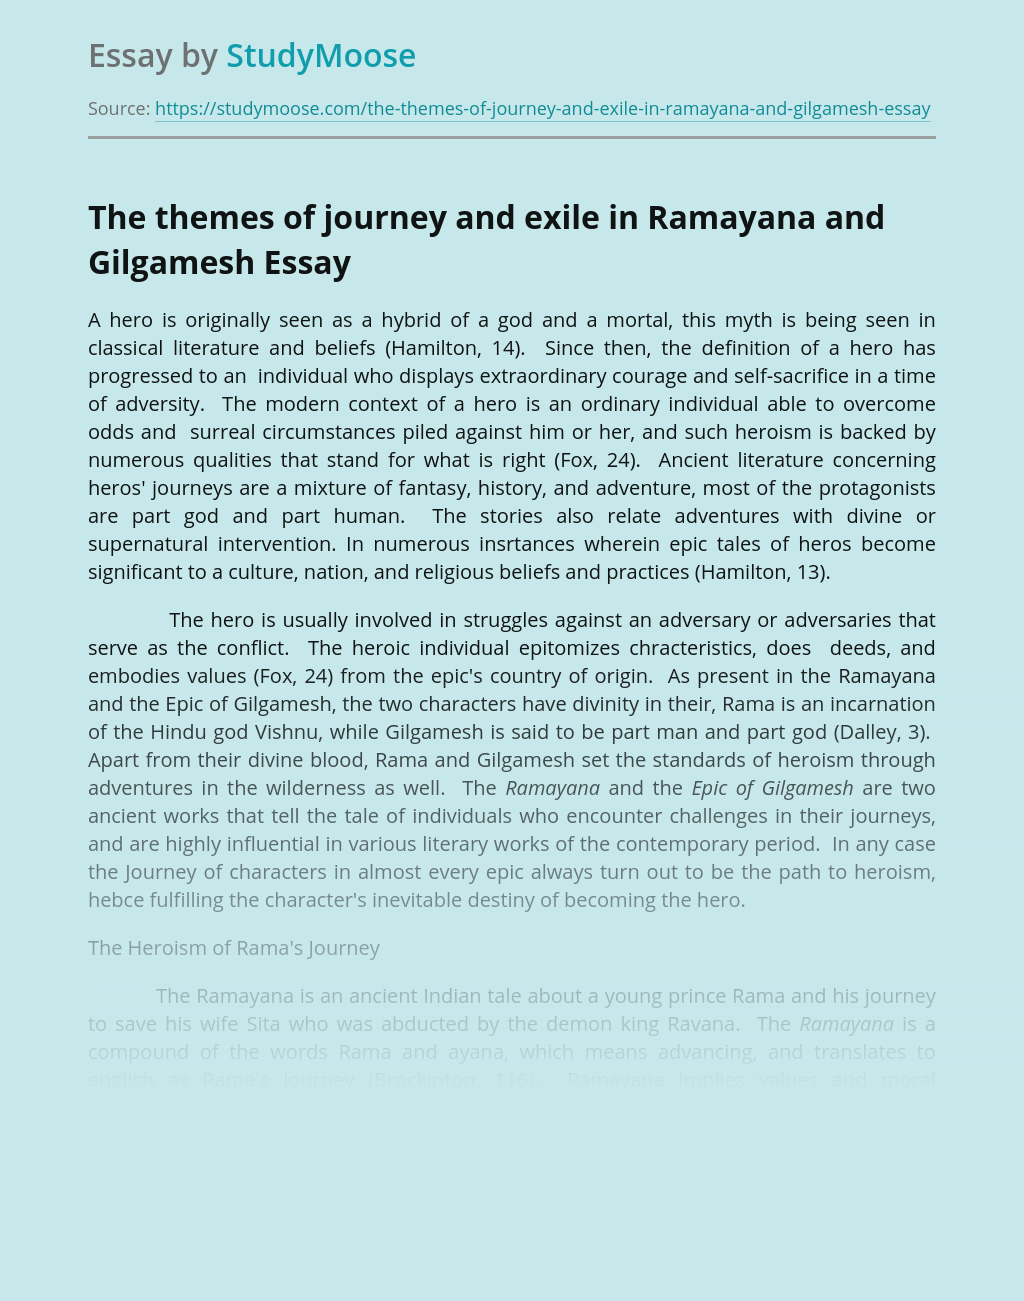 The themes of journey and exile in Ramayana and Gilgamesh